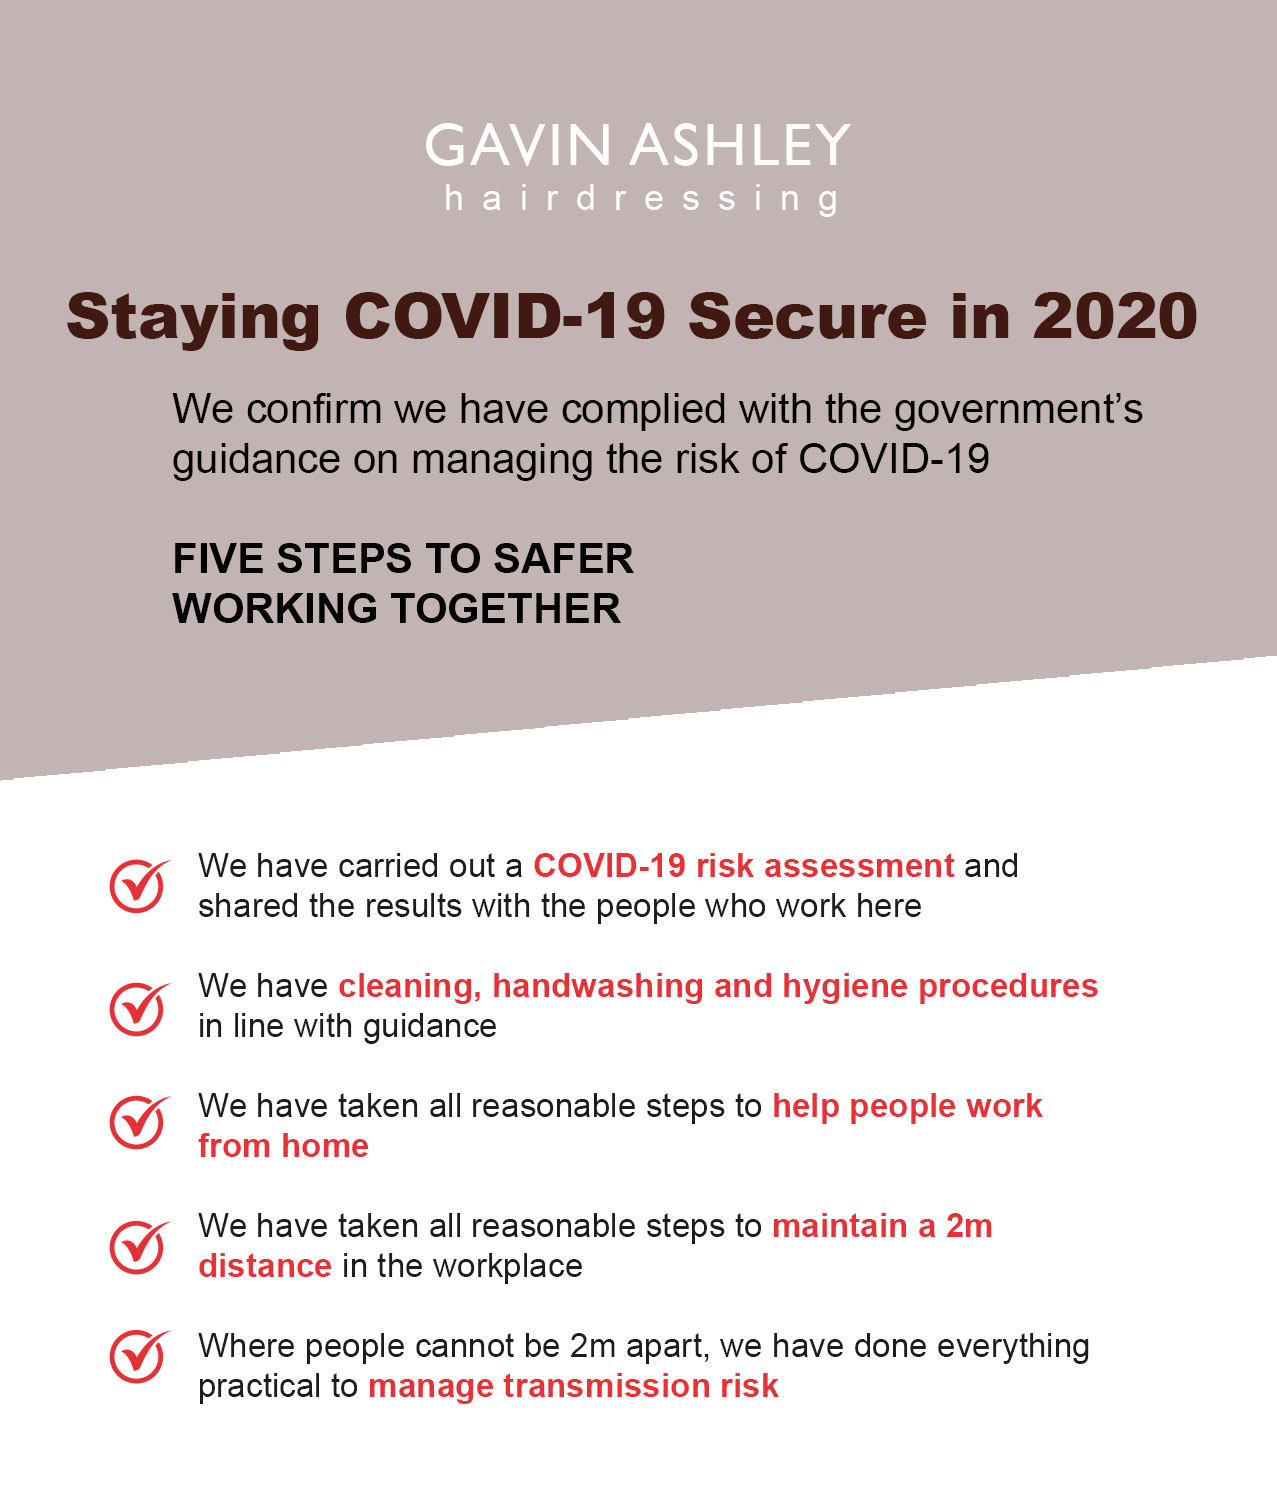 gavin ashley hair salon in bury st edmunds Safe Staying COVID 19 Secure in 2020